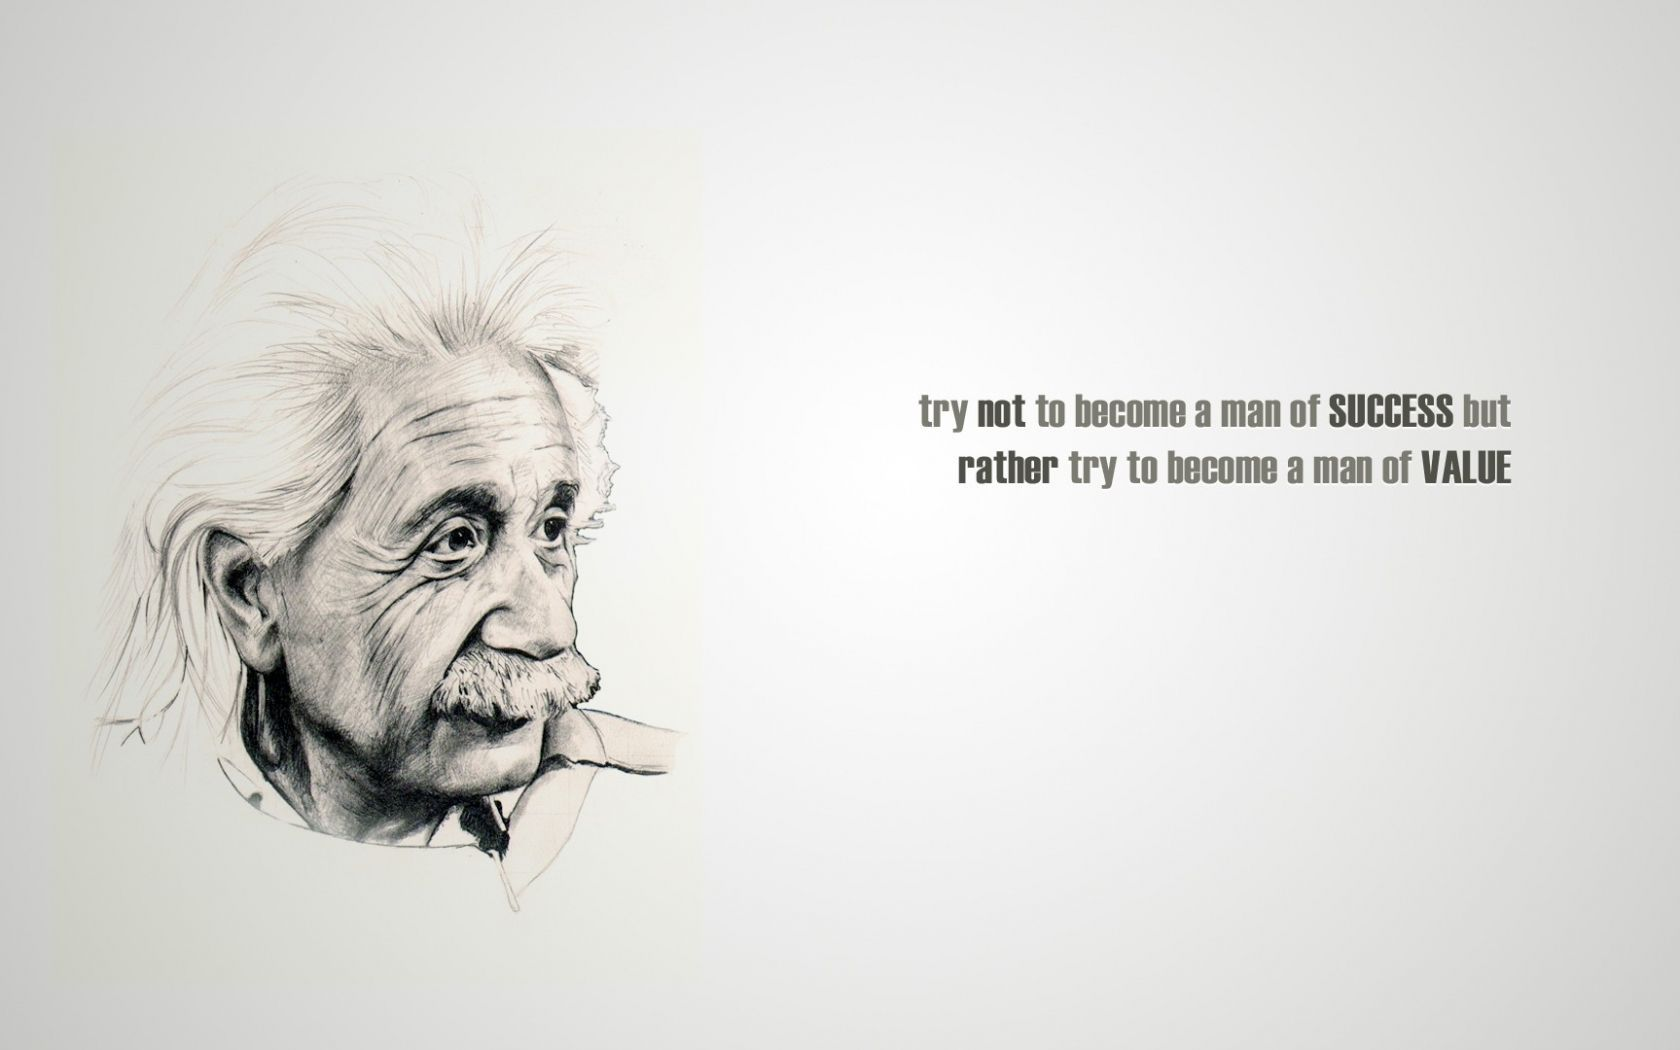 """ Try not to become a man of success but rather try to become a man of value."" – Albert Einstein [1680*1050]"